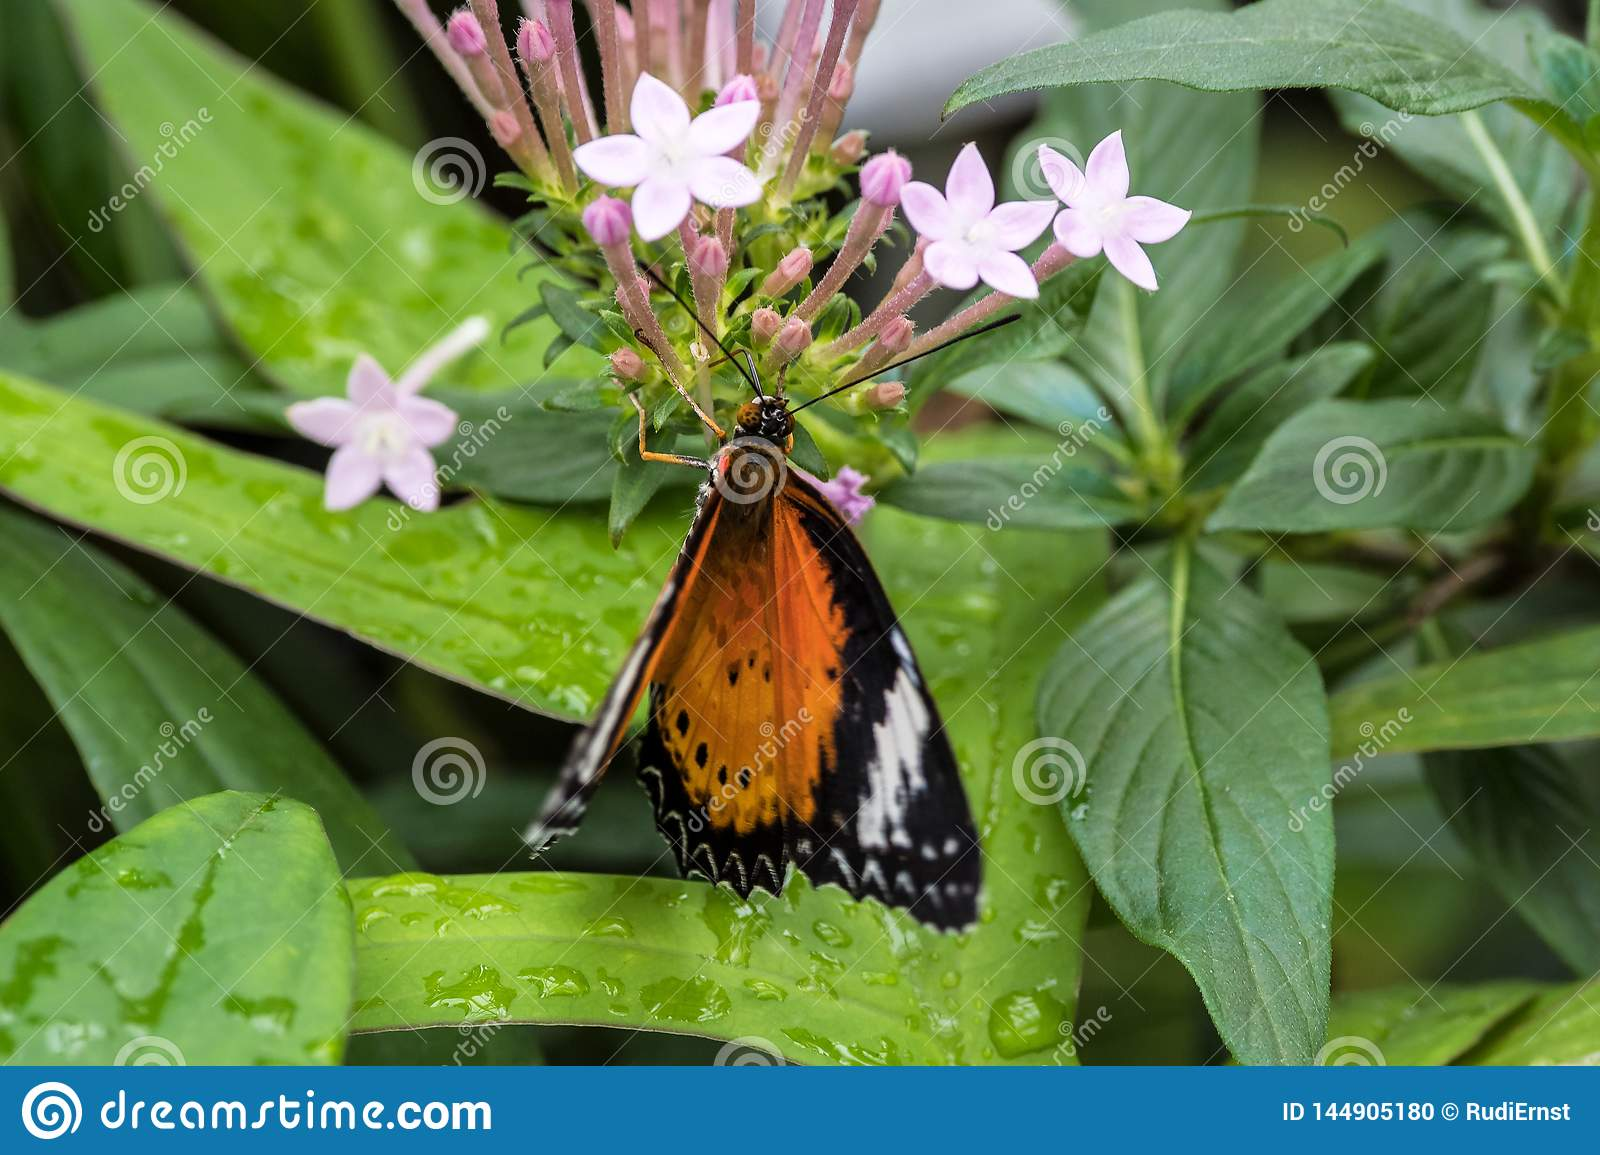 Cethosia cyane, the leopard lacewing, is a species of heliconiine butterfly